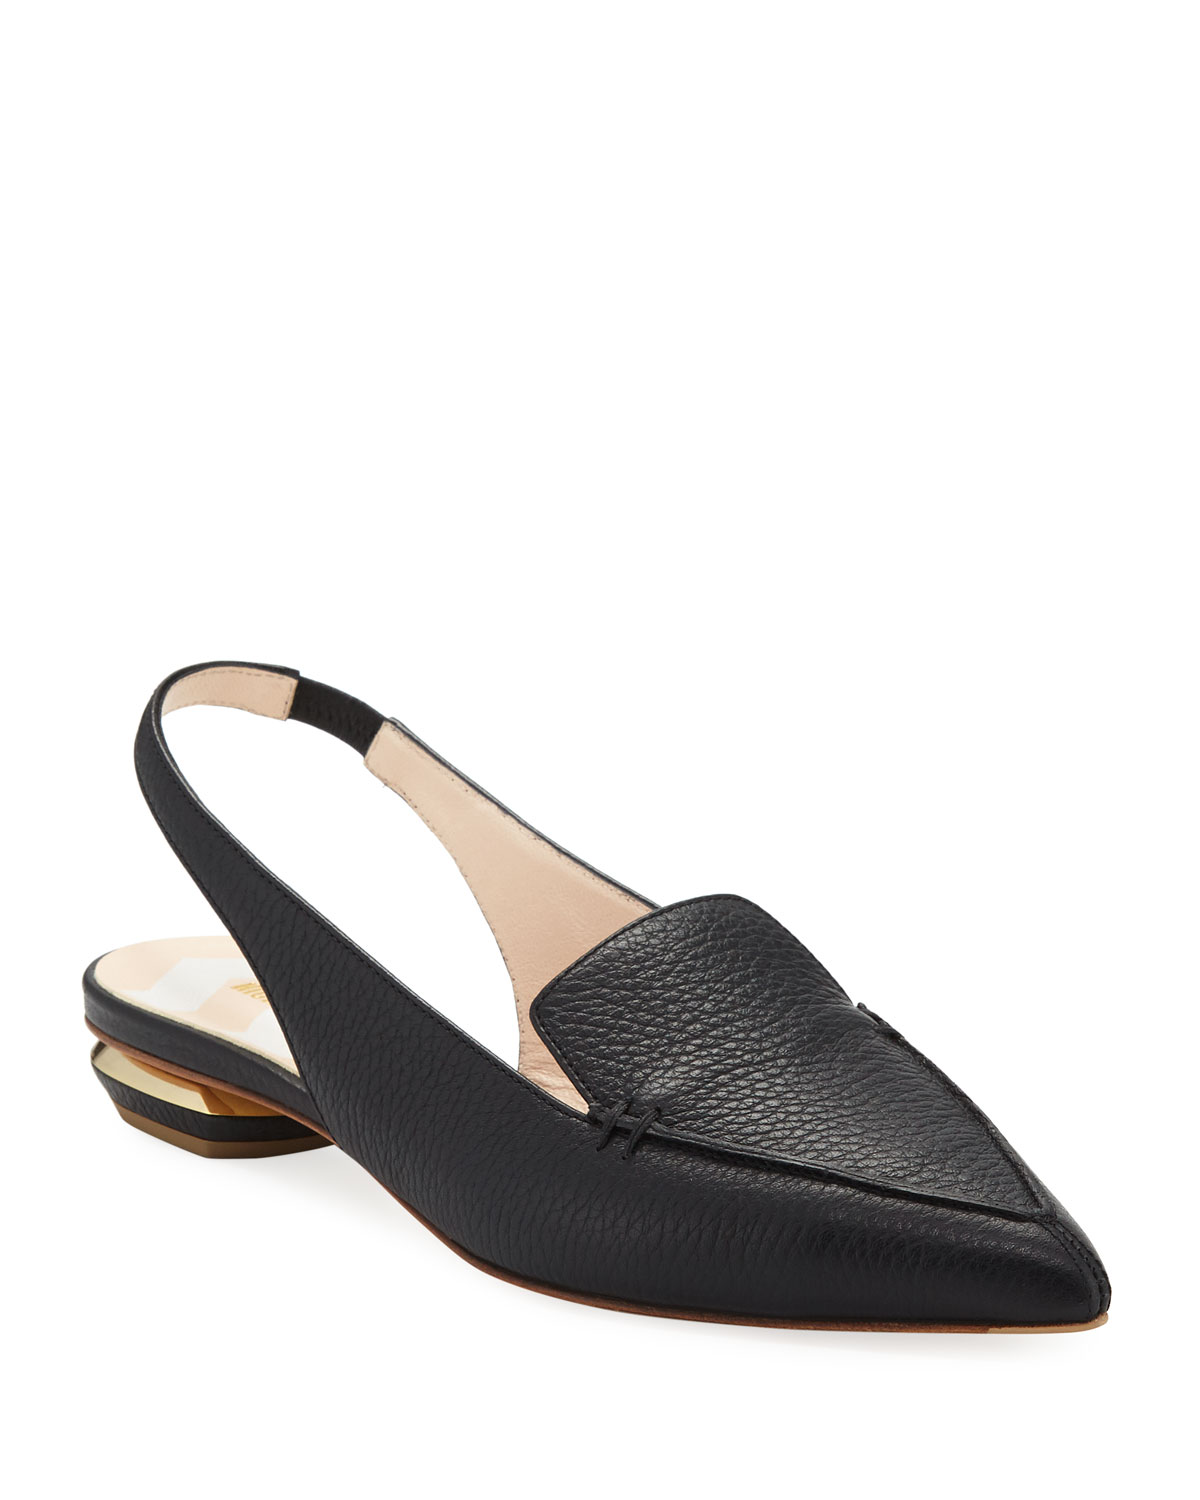 95152112d50 Nicholas Kirkwood Beya Slingback Grained-Leather Loafers In Black ...